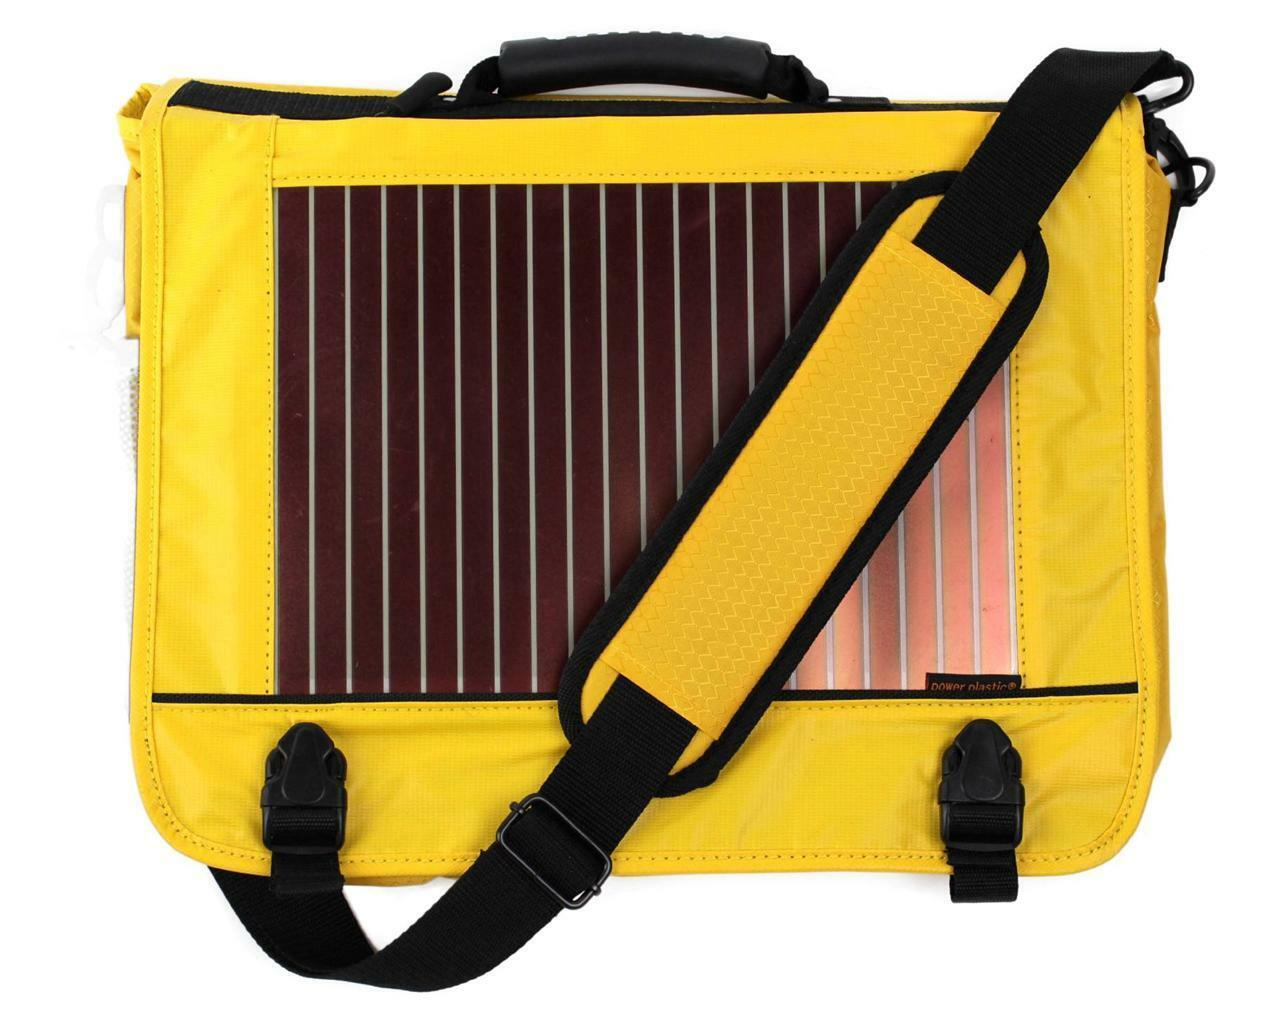 new-eco-traveler-solar-panel-laptop-books-messenger-shoulder-bag-yellow-et0120y